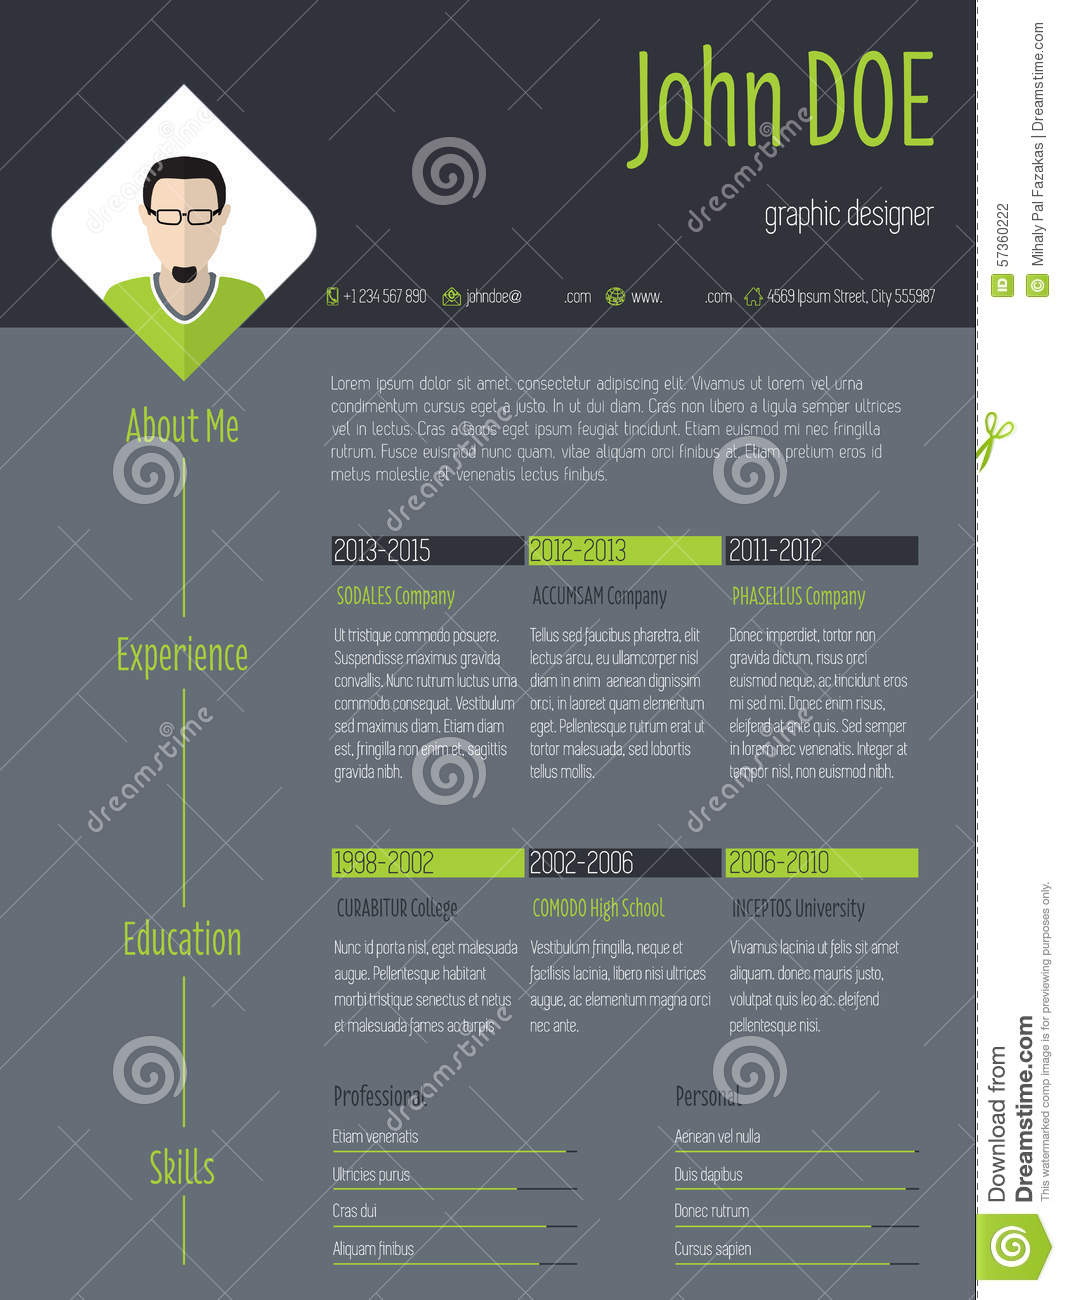 curriculum vitae template design sample customer service resume curriculum vitae template design curriculum vitae o cv modern resume cv photo and dark background